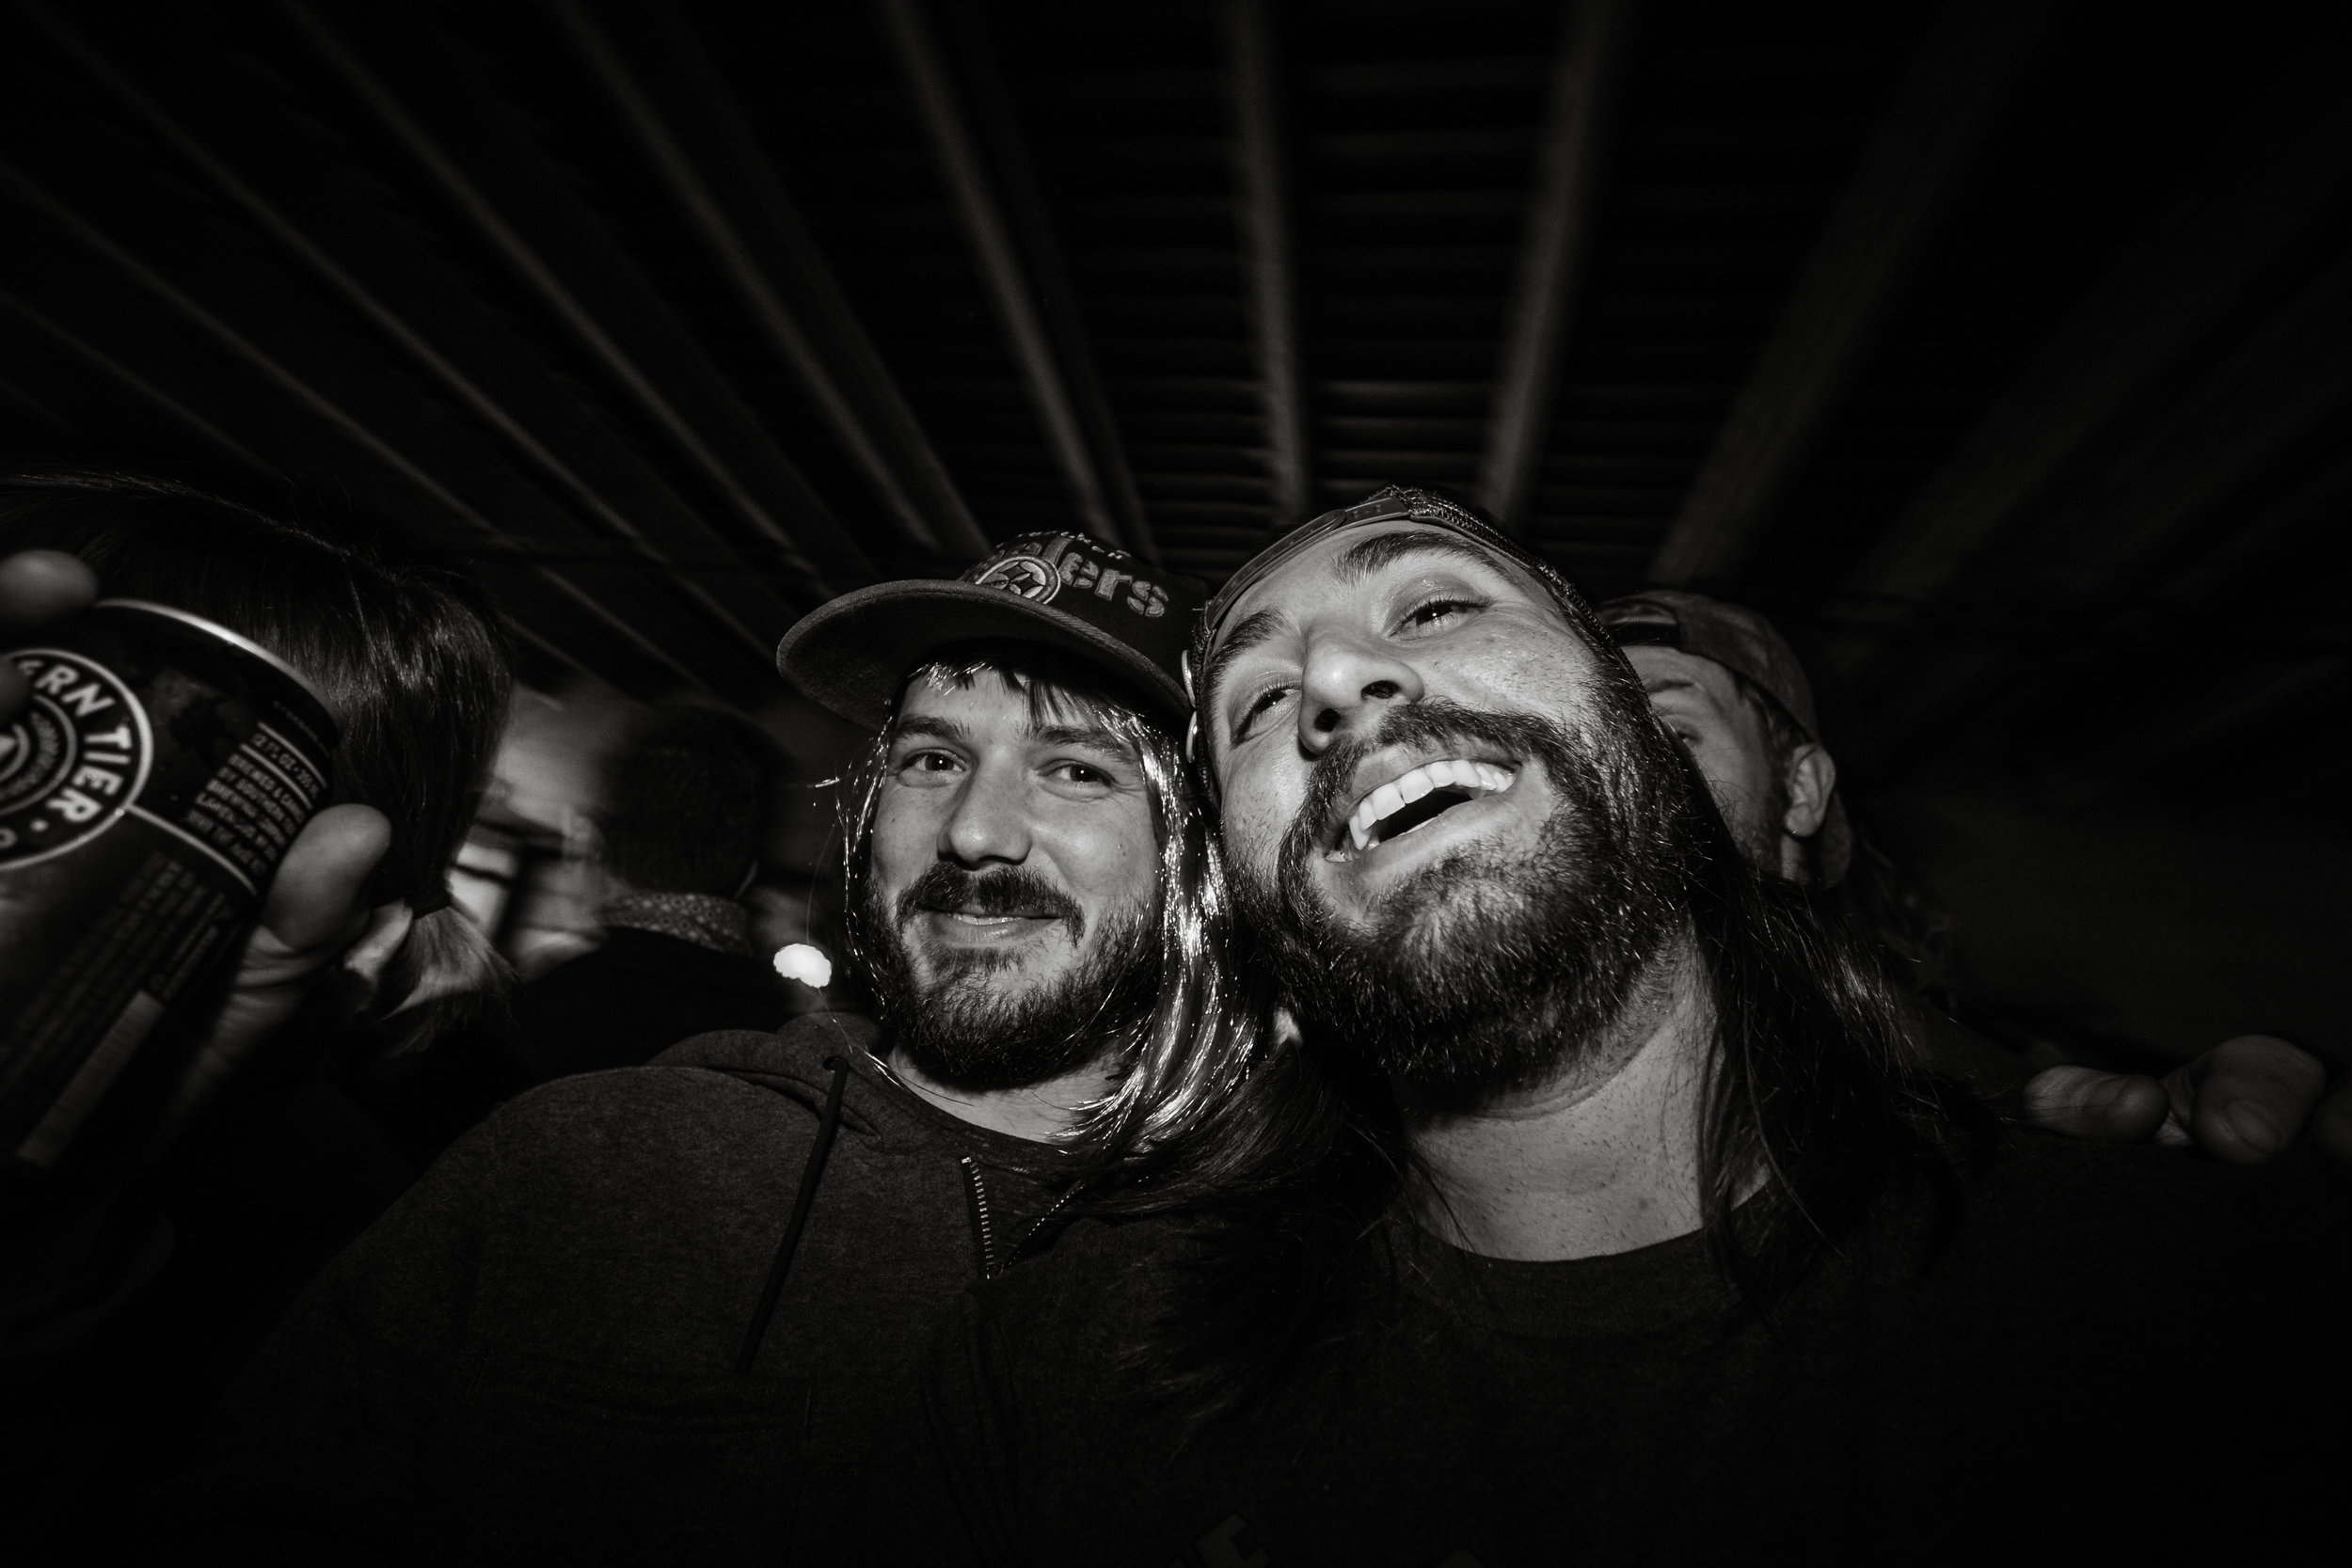 2017.2.25_party_bw (64 of 237).jpg